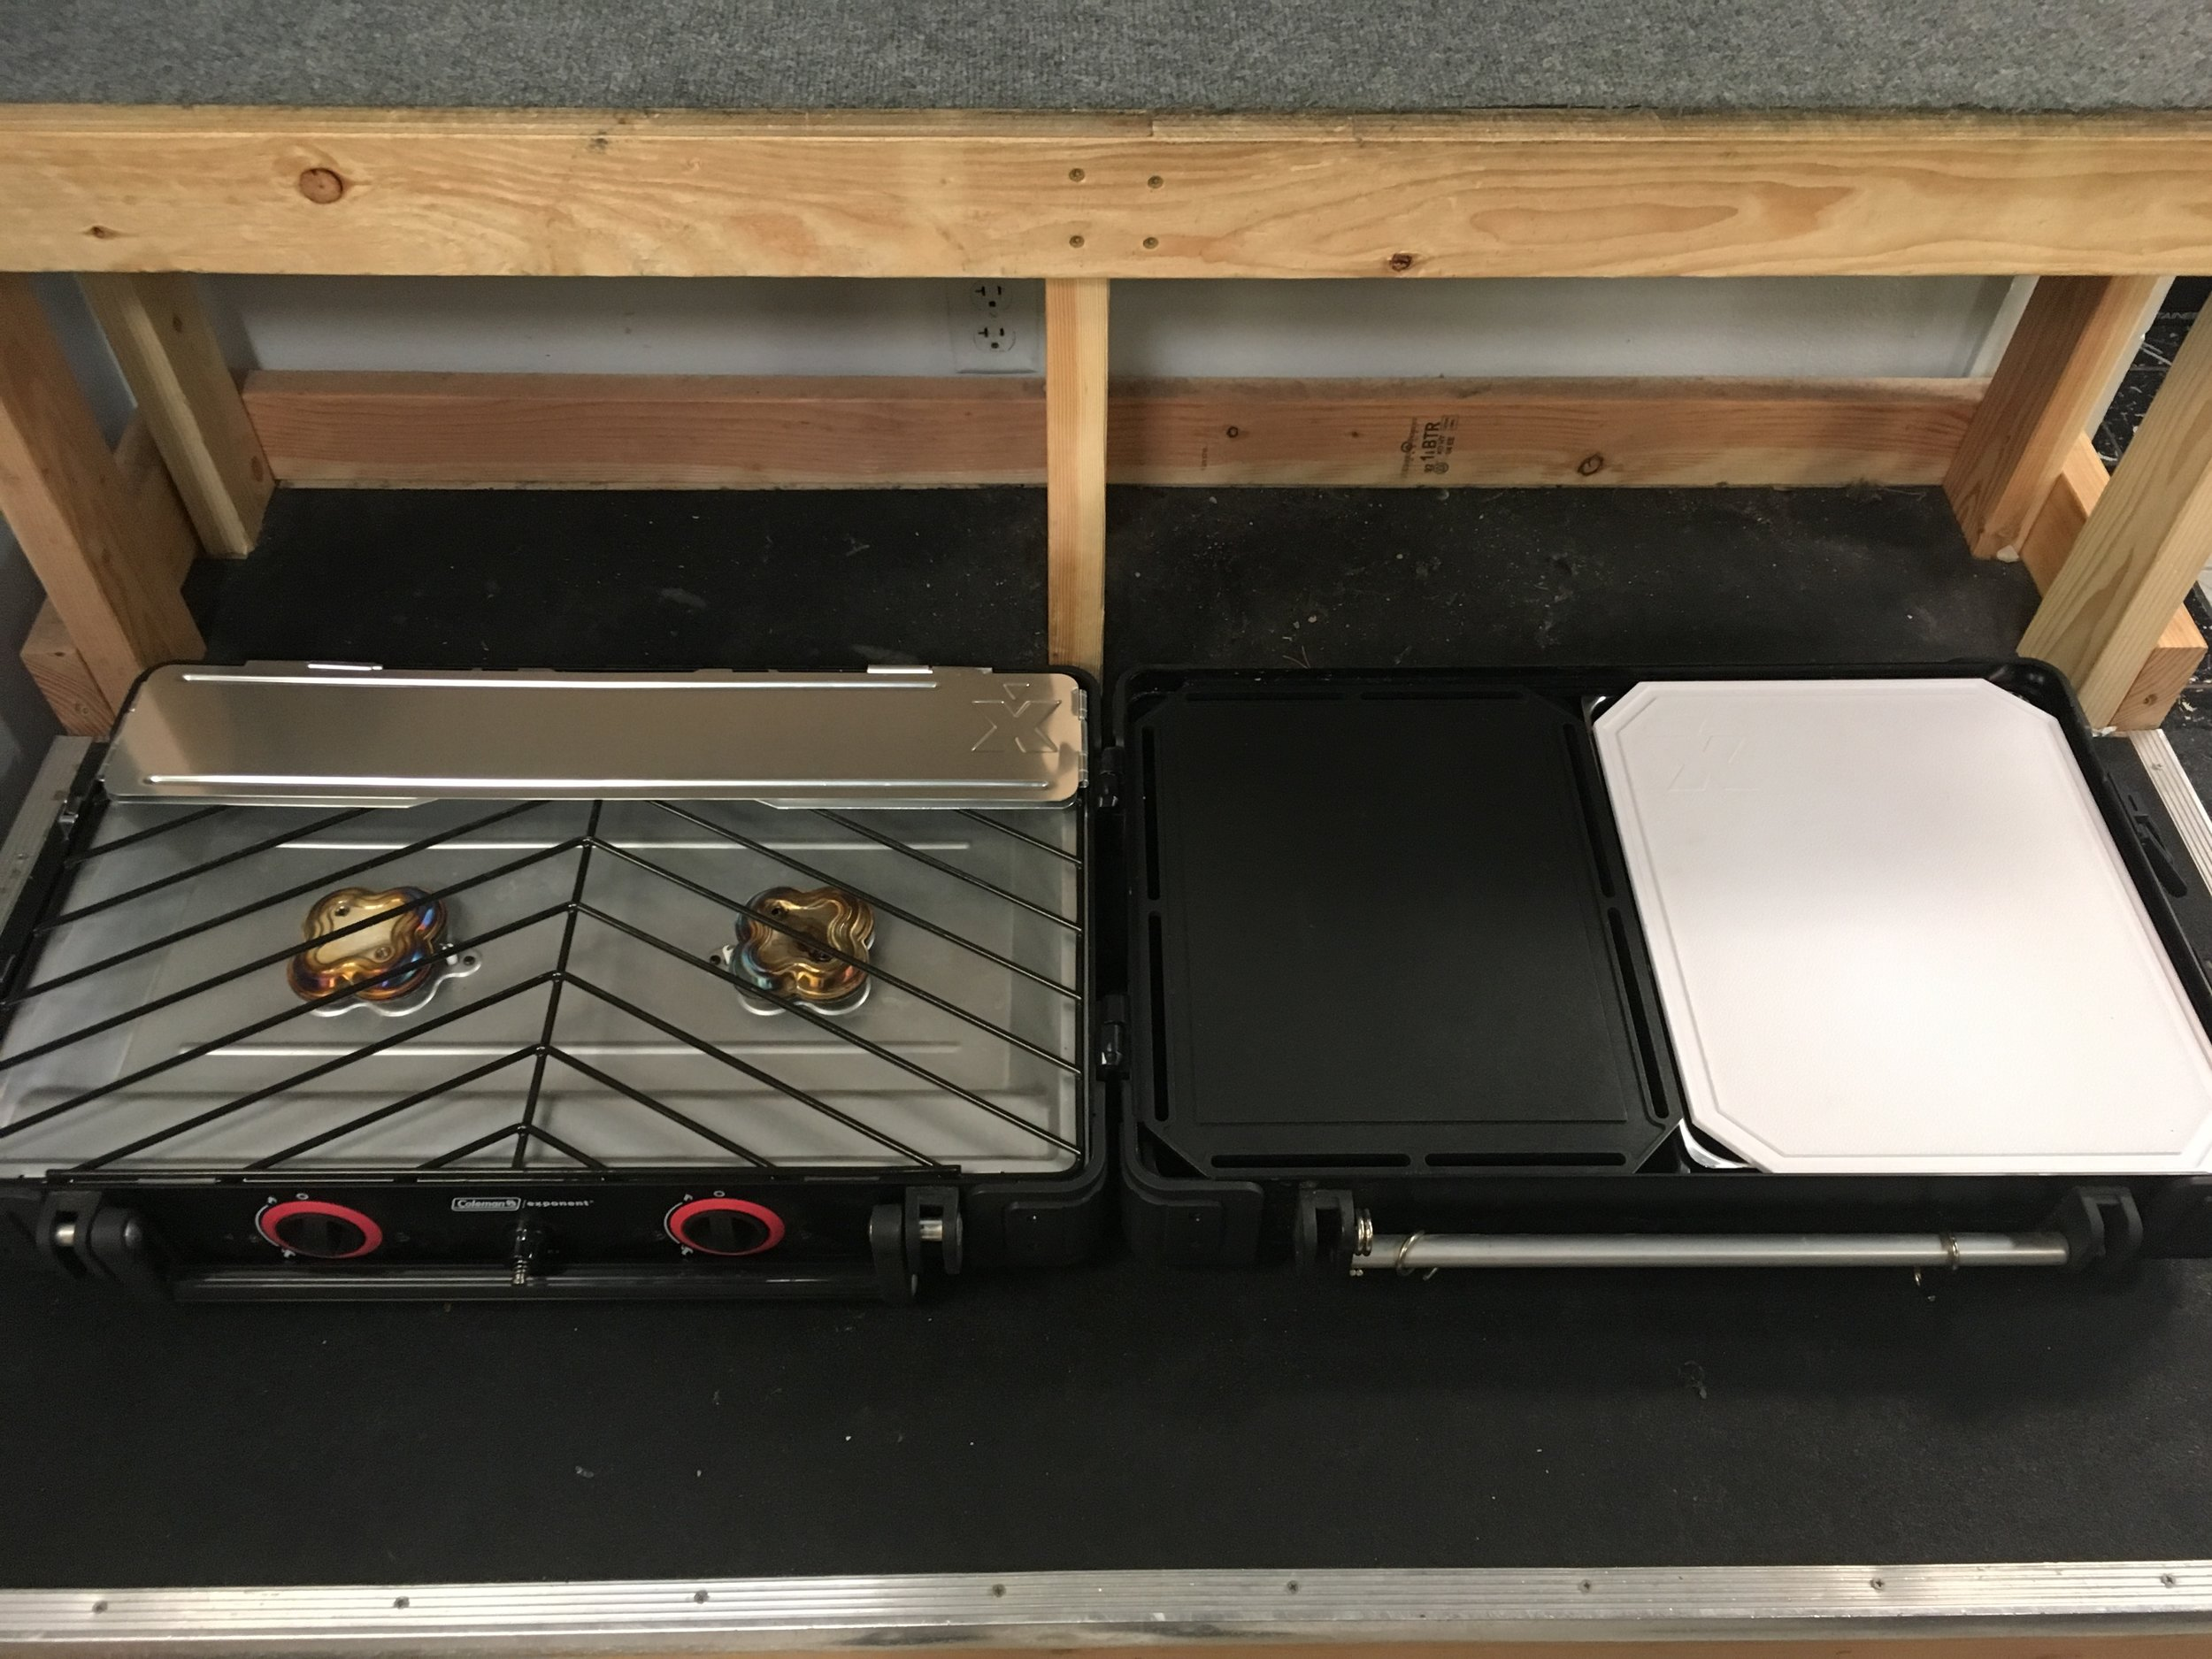 Camp in style with Coleman's Exponent Grill Set. The grill features two propane burners, cutting board and cook set. We're selling it for $150!